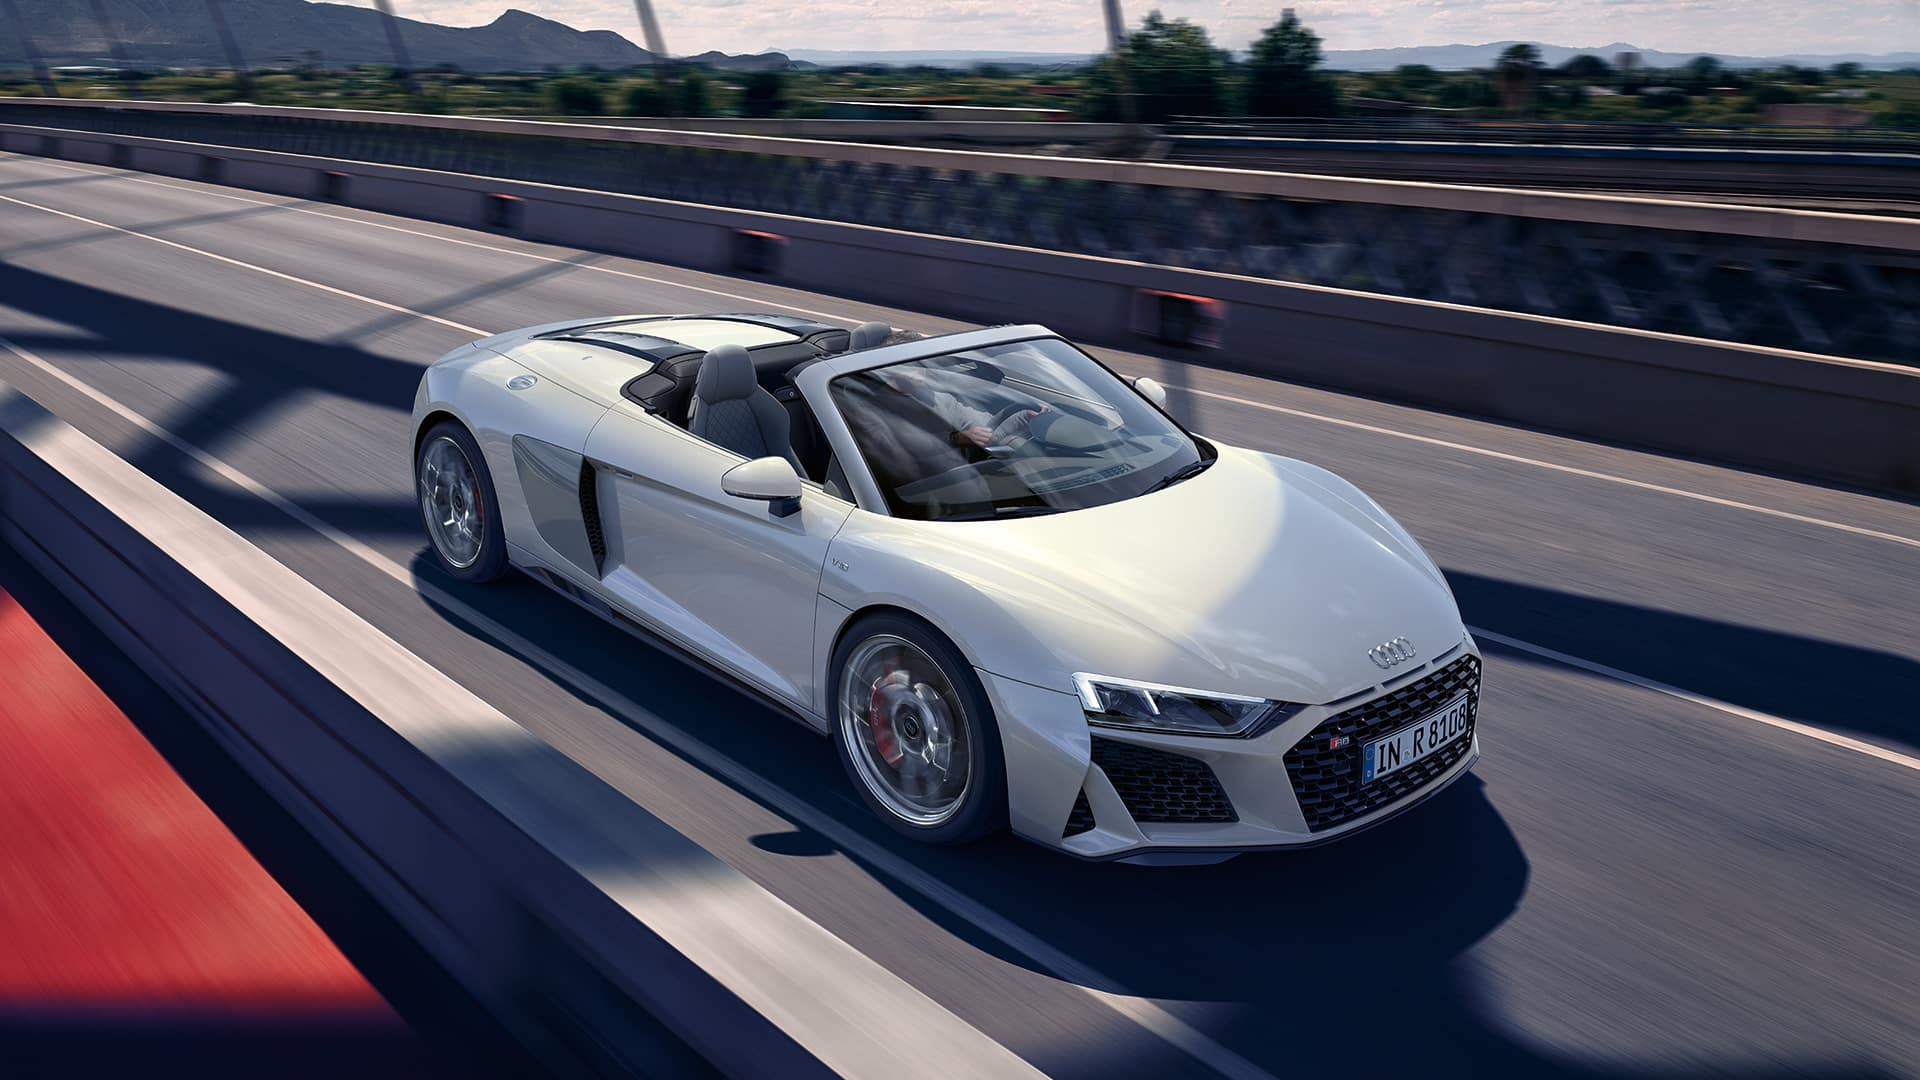 Audi R8 Spyder V10 quattro in motion